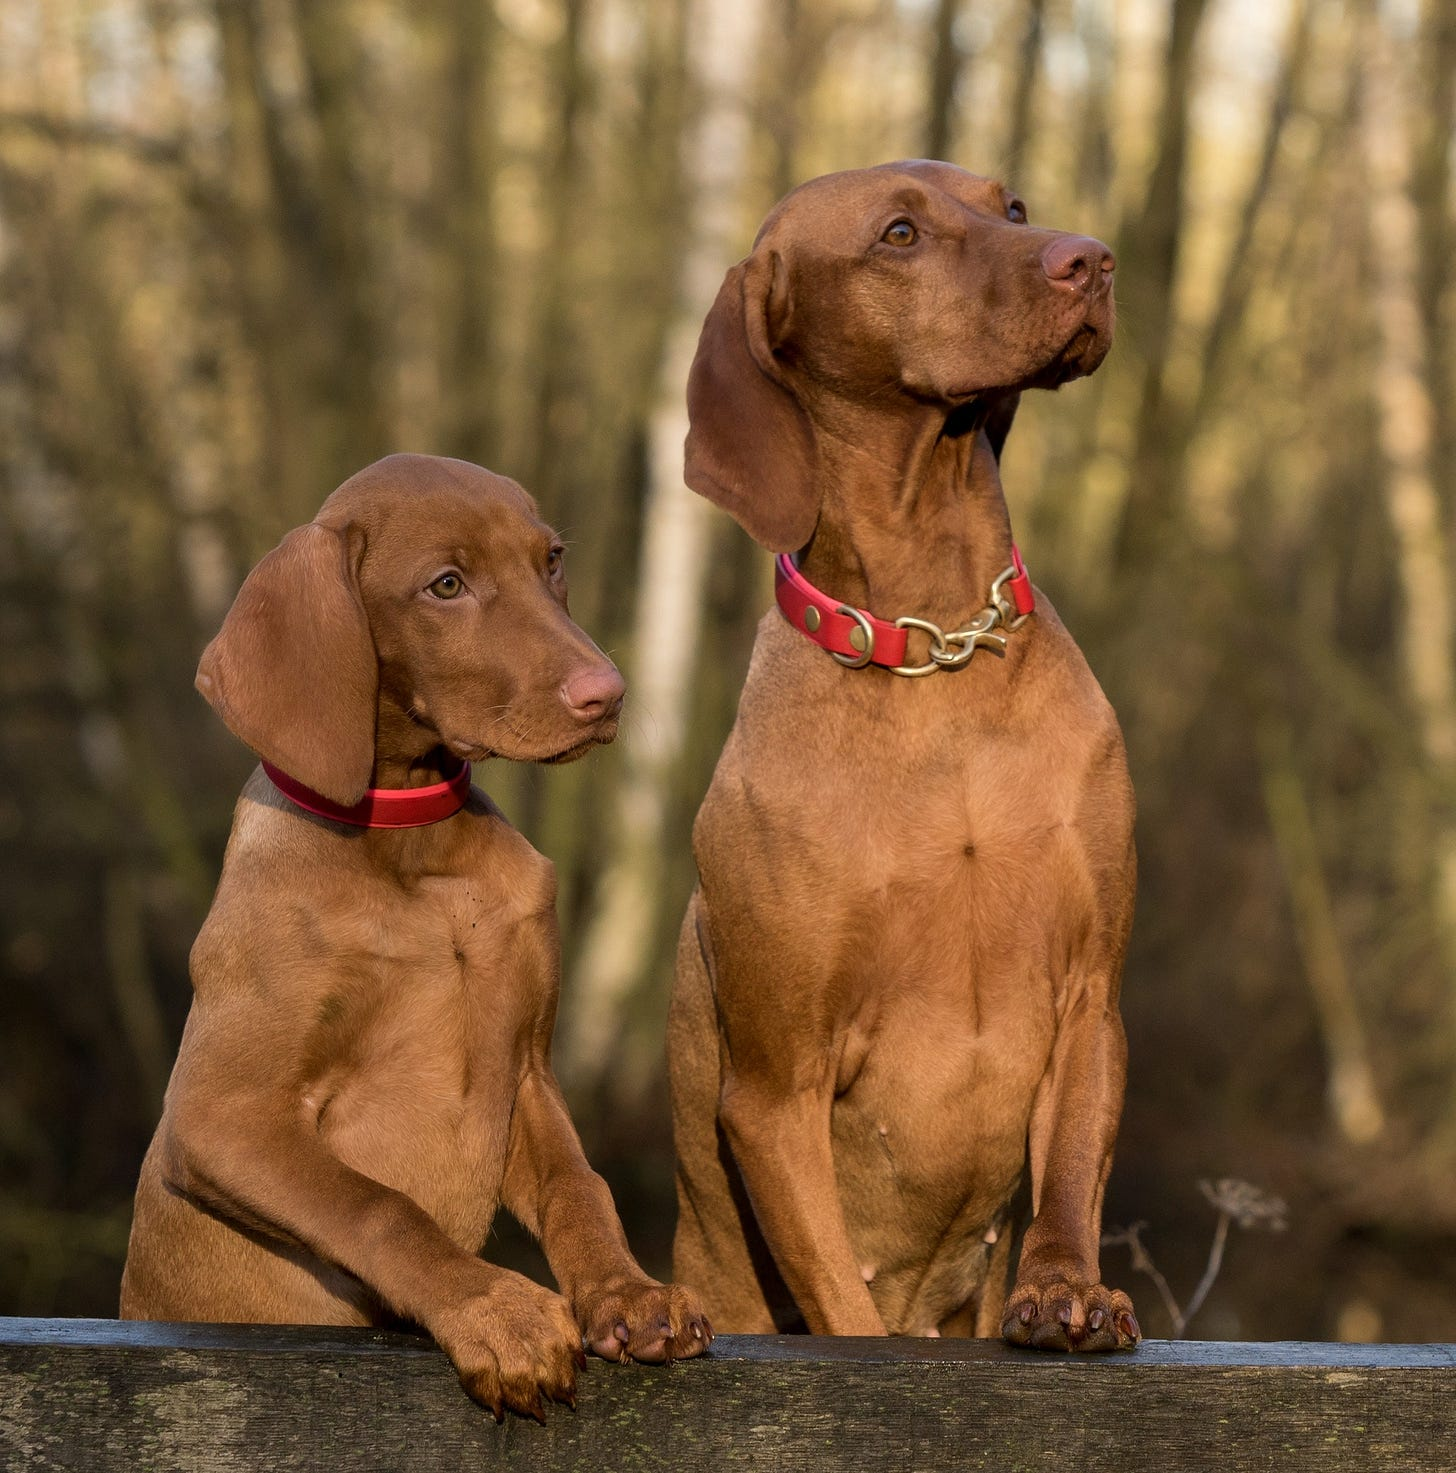 Two hunting dogs each with their two front paws resting on a low stone wall so they look like they'Re standing talking to each other. One is older than the other